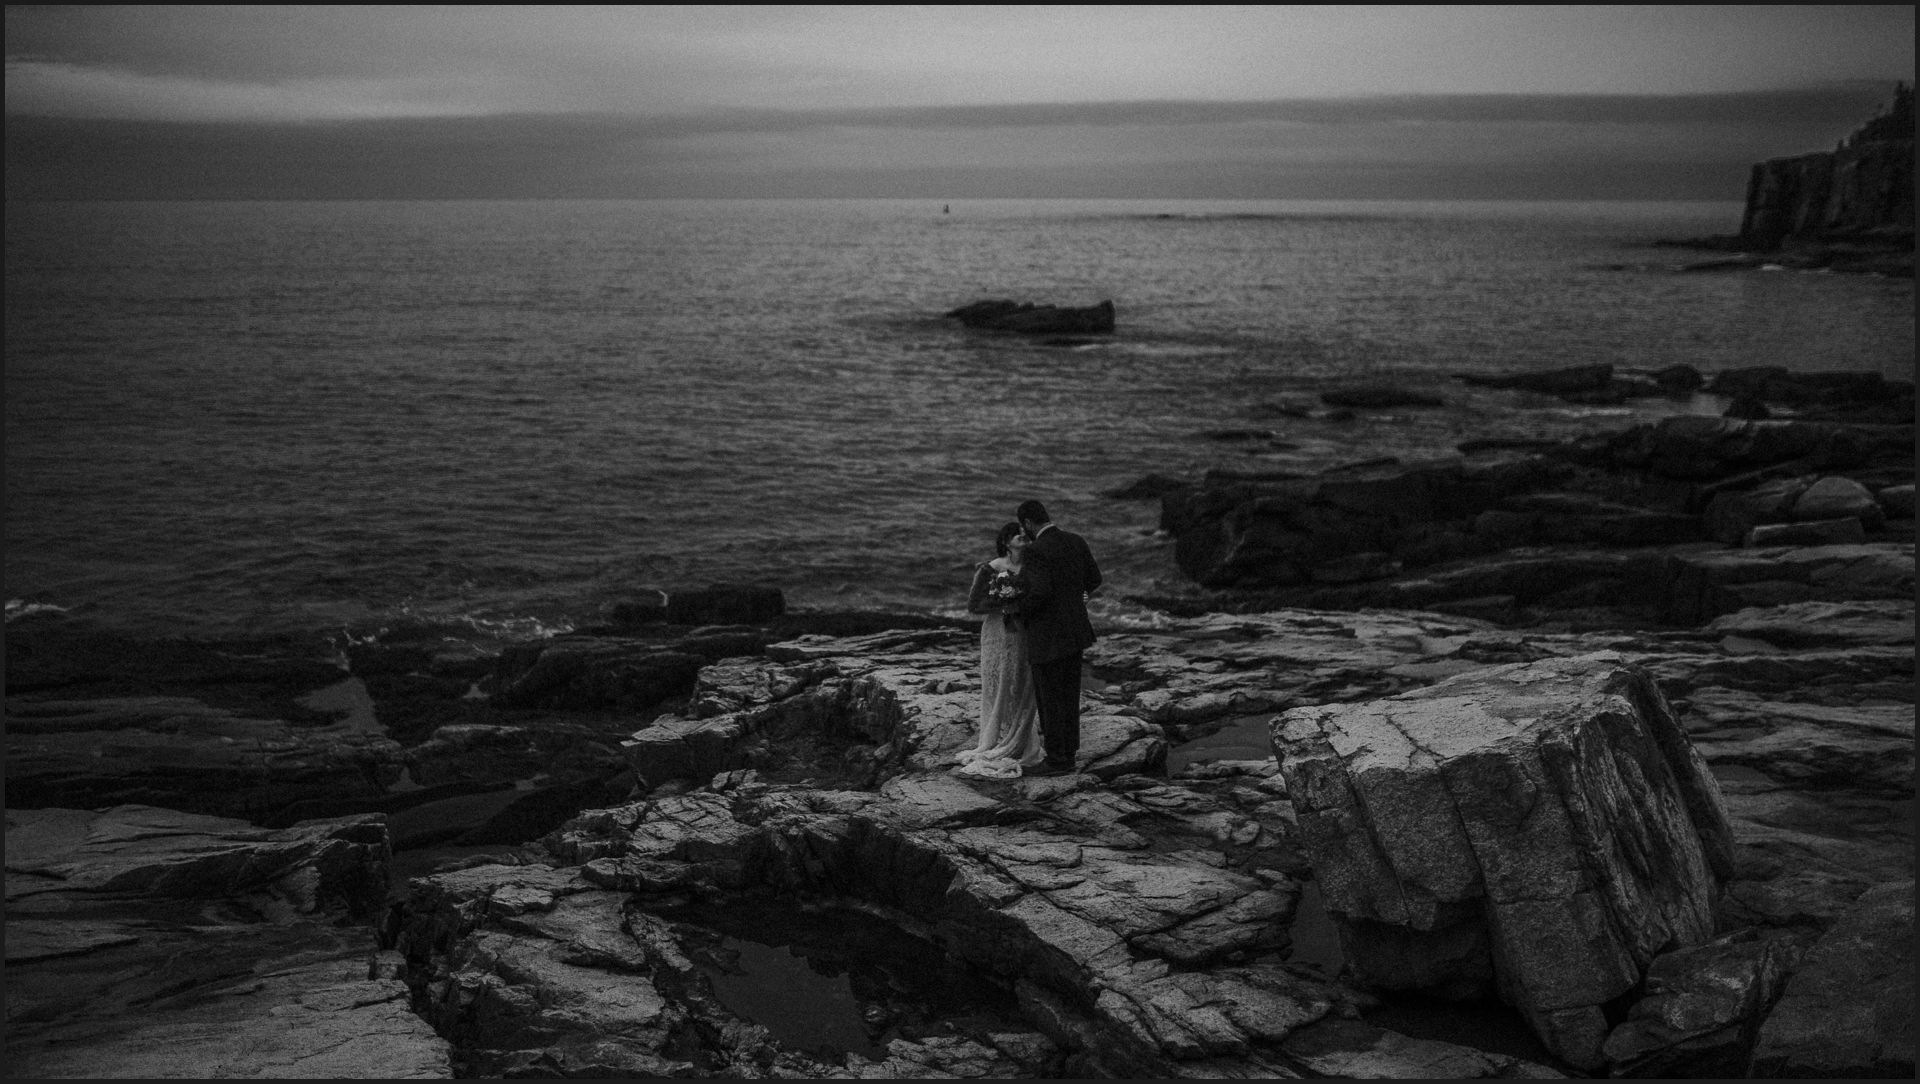 bride, groom, bar harbor, maine wedding, black and white, landscape, wedding by the ocean